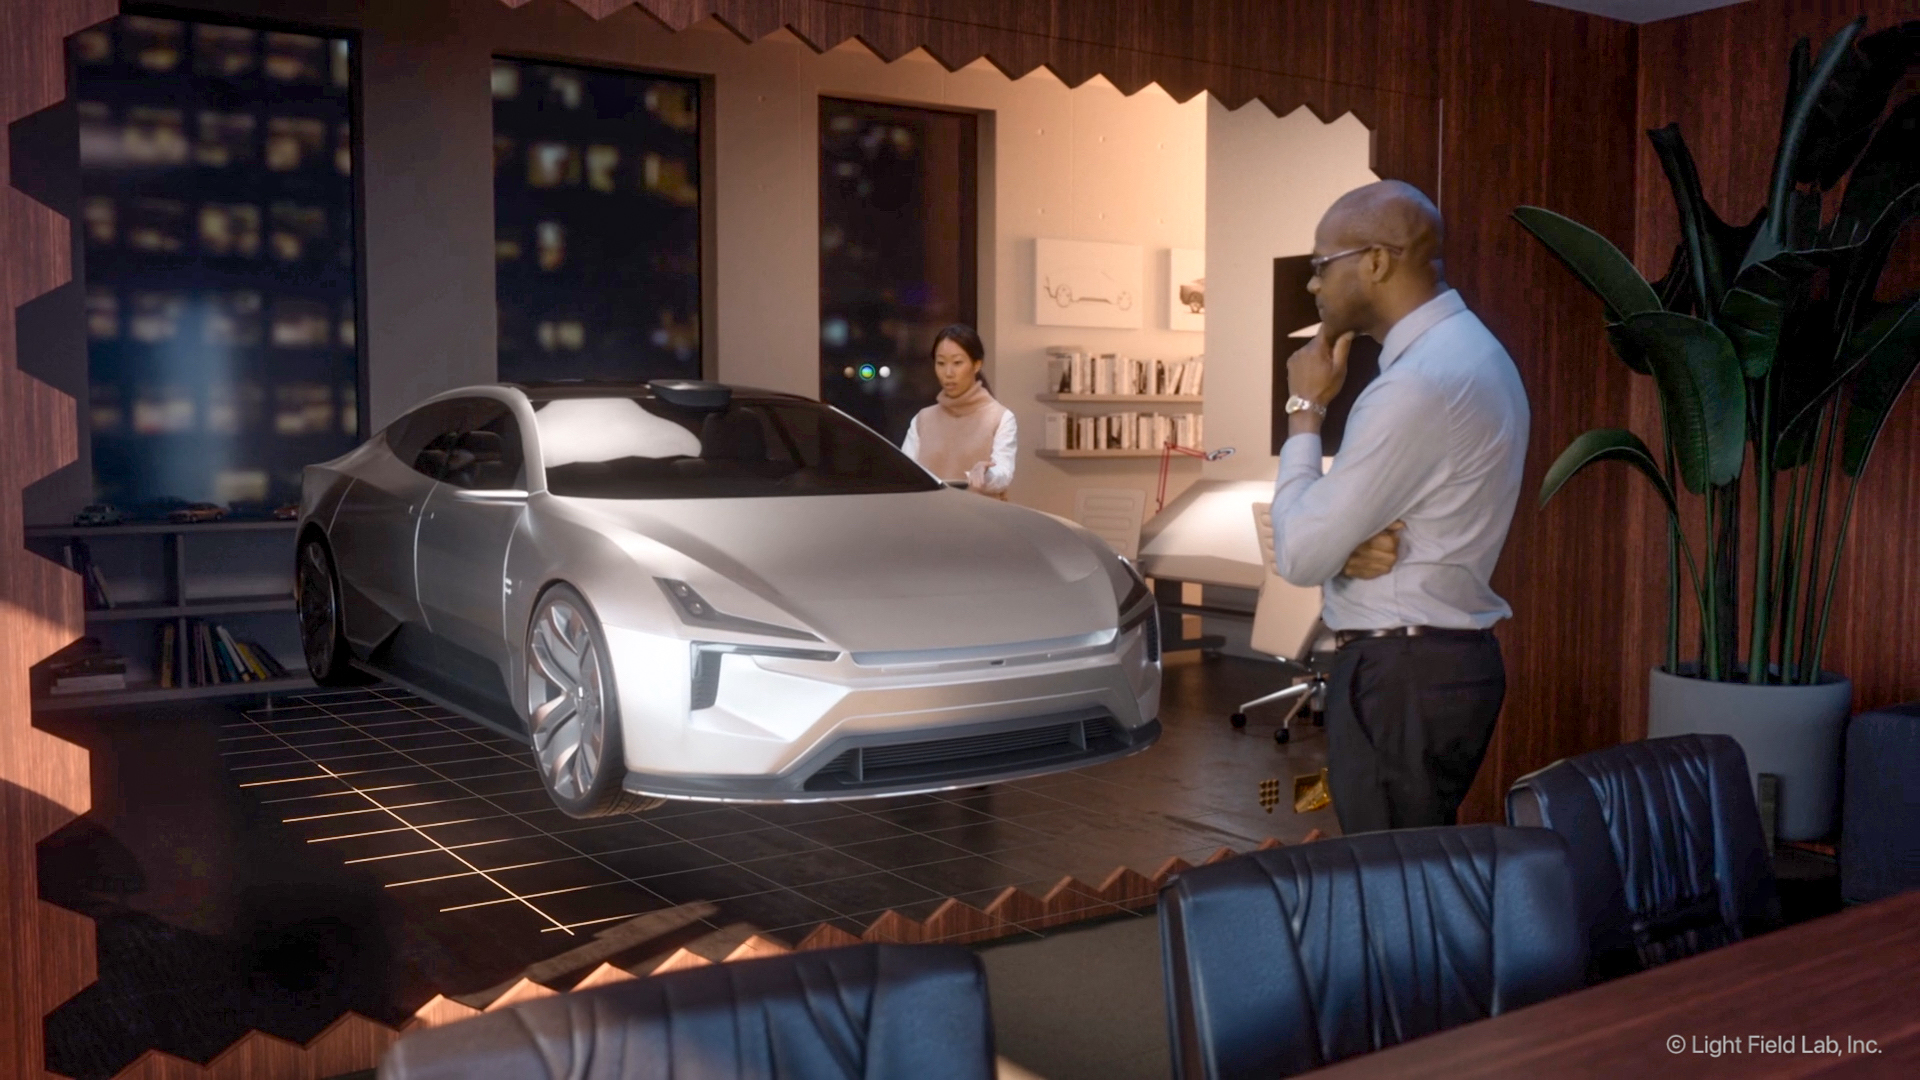 Future vision art of SolidLight Display showing a sports car